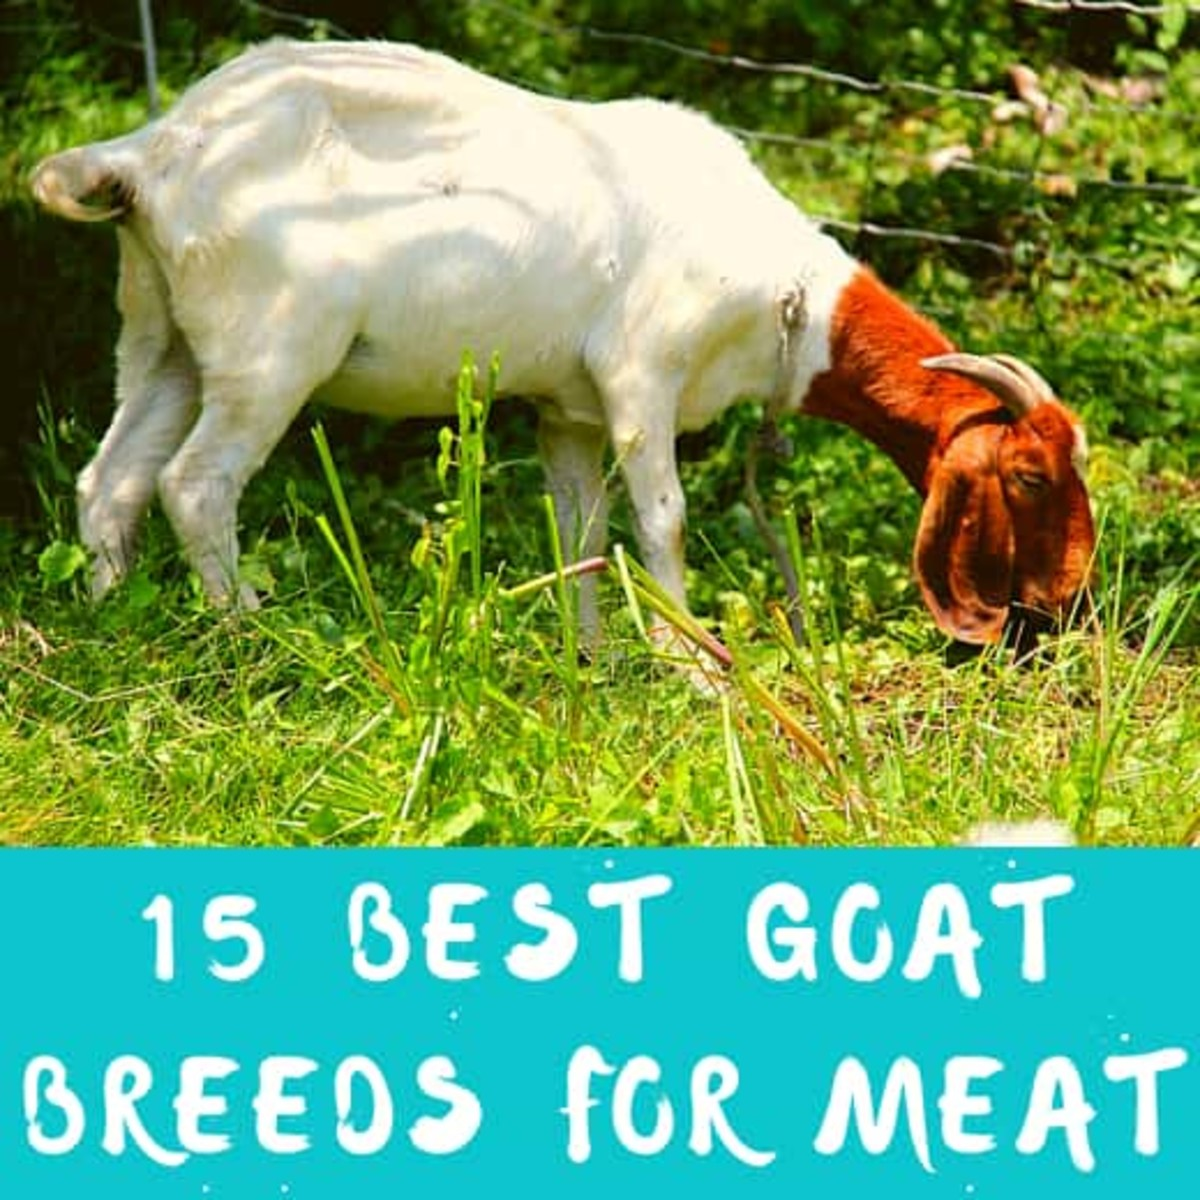 15 Best Goat Breeds for Meat